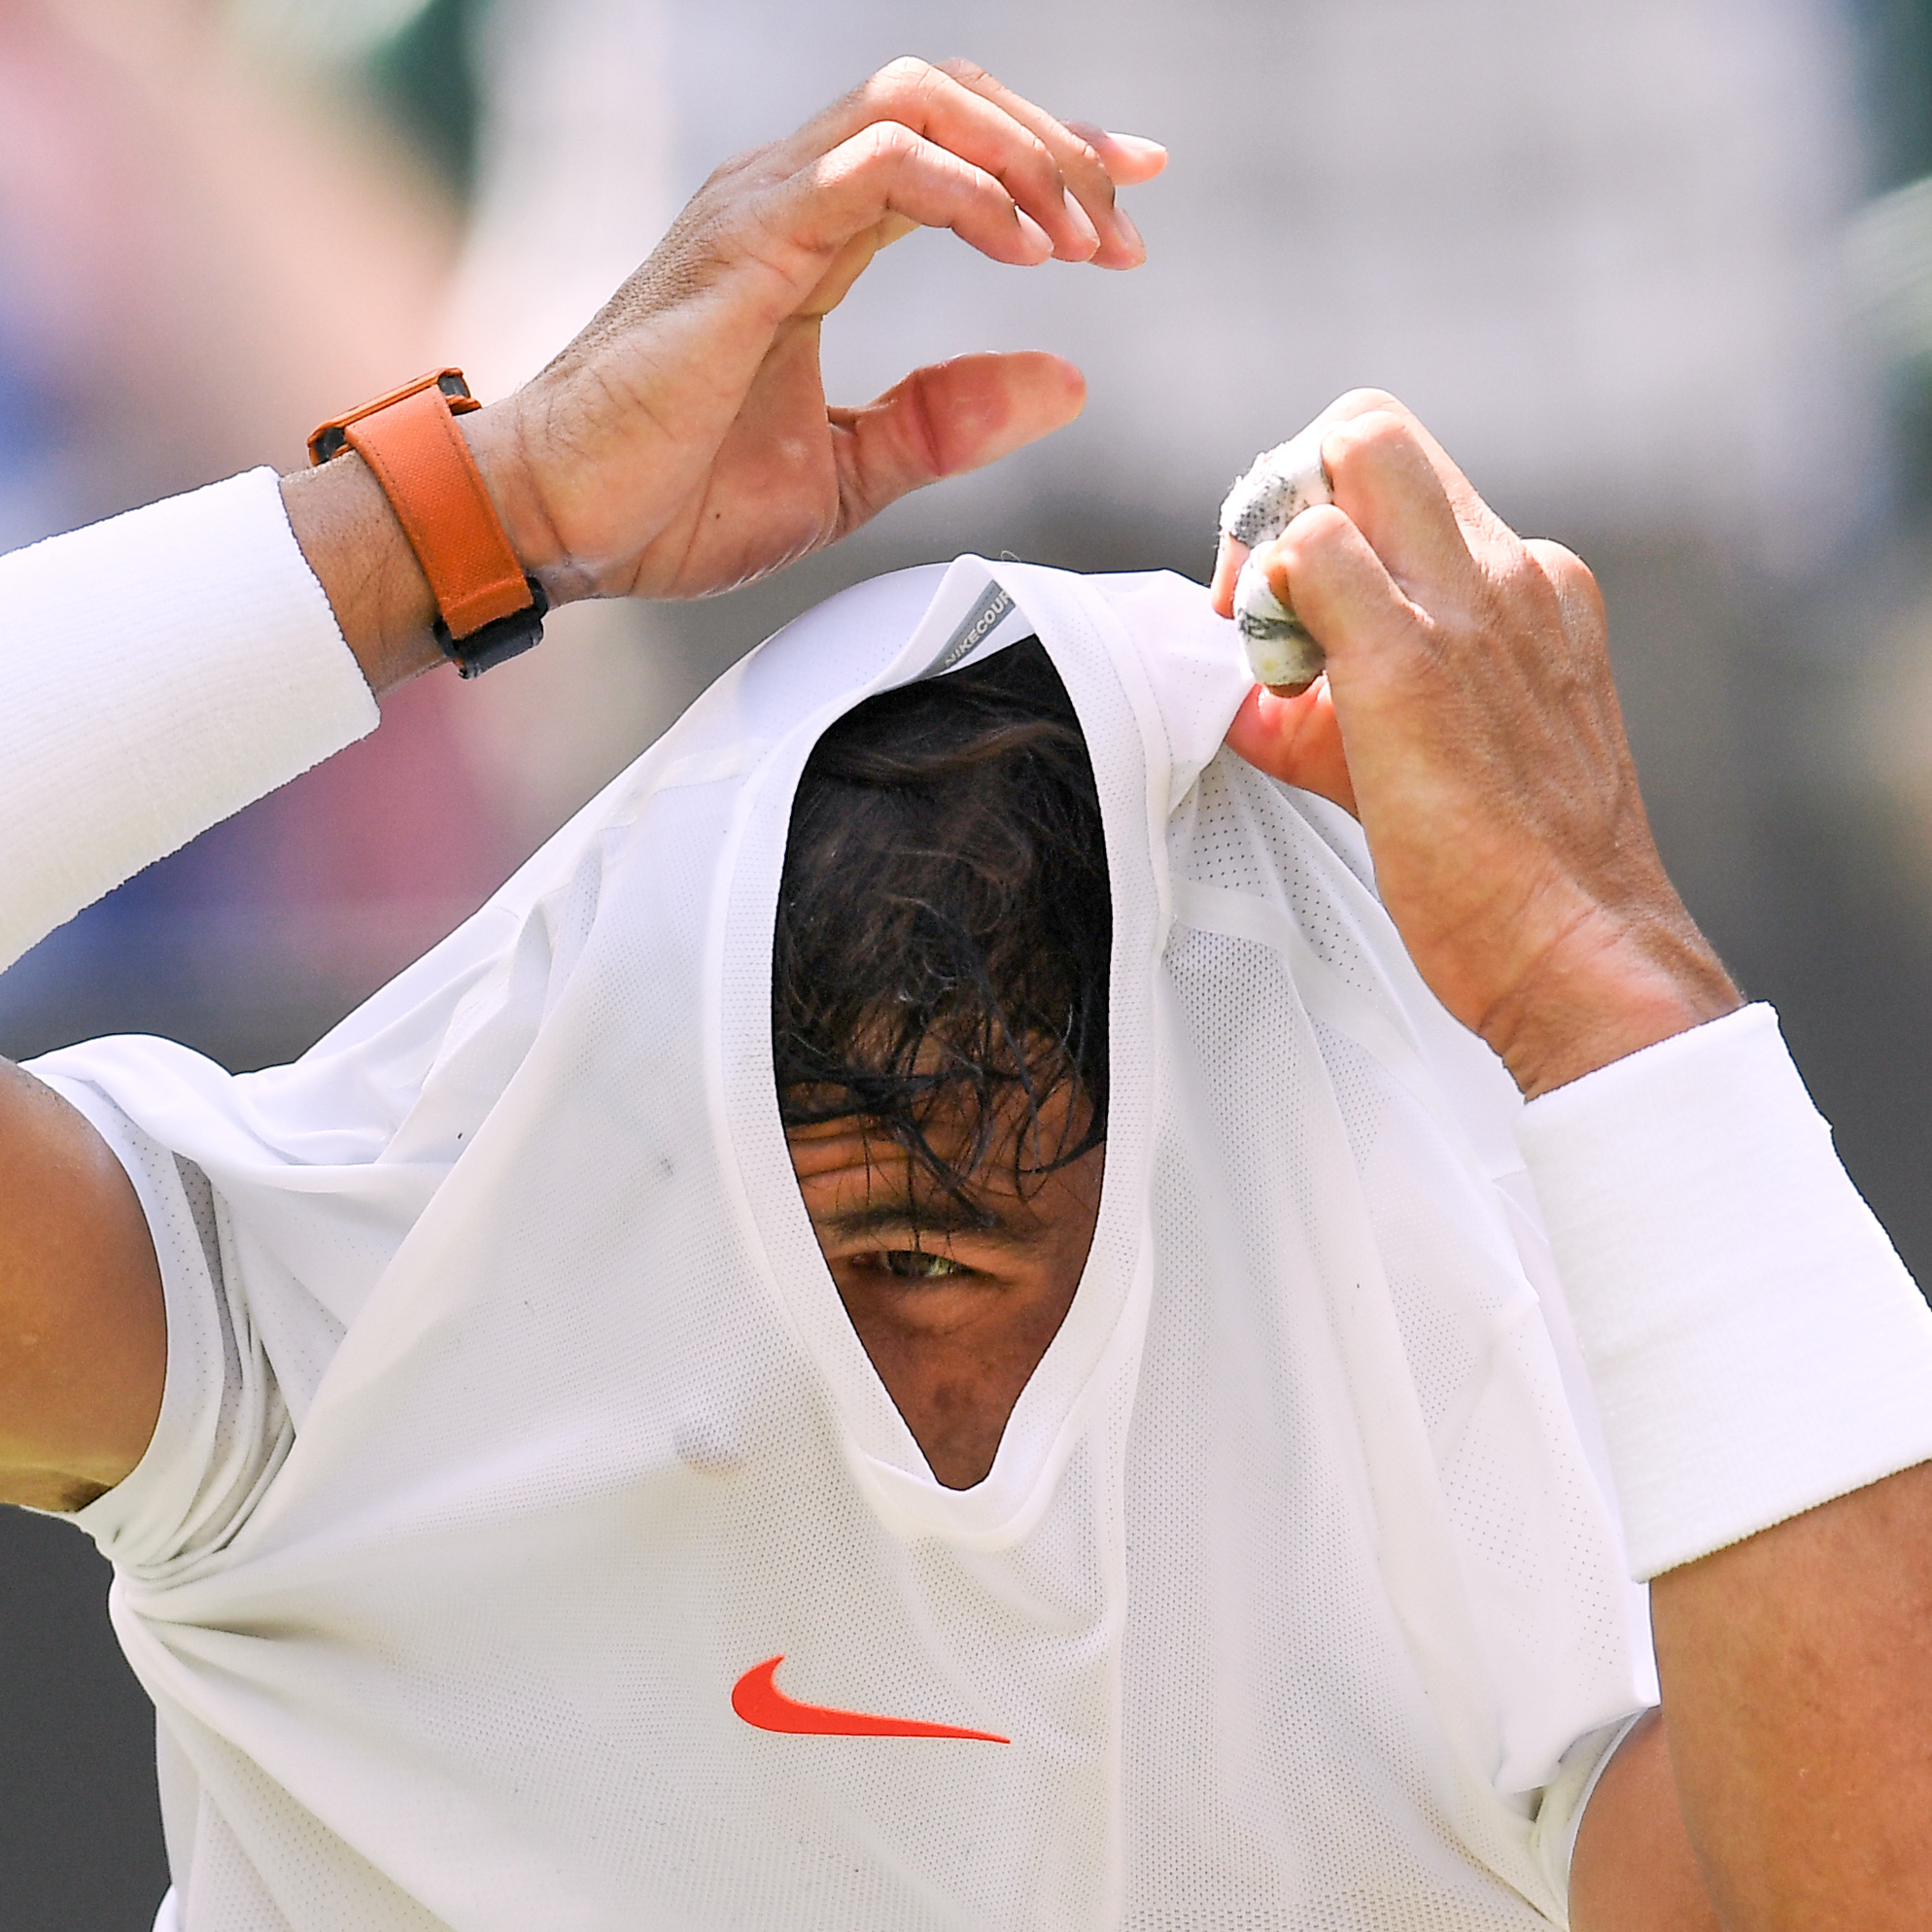 Rafael Nadal changing his shirt between games during his Gentlemen's Singles third round match